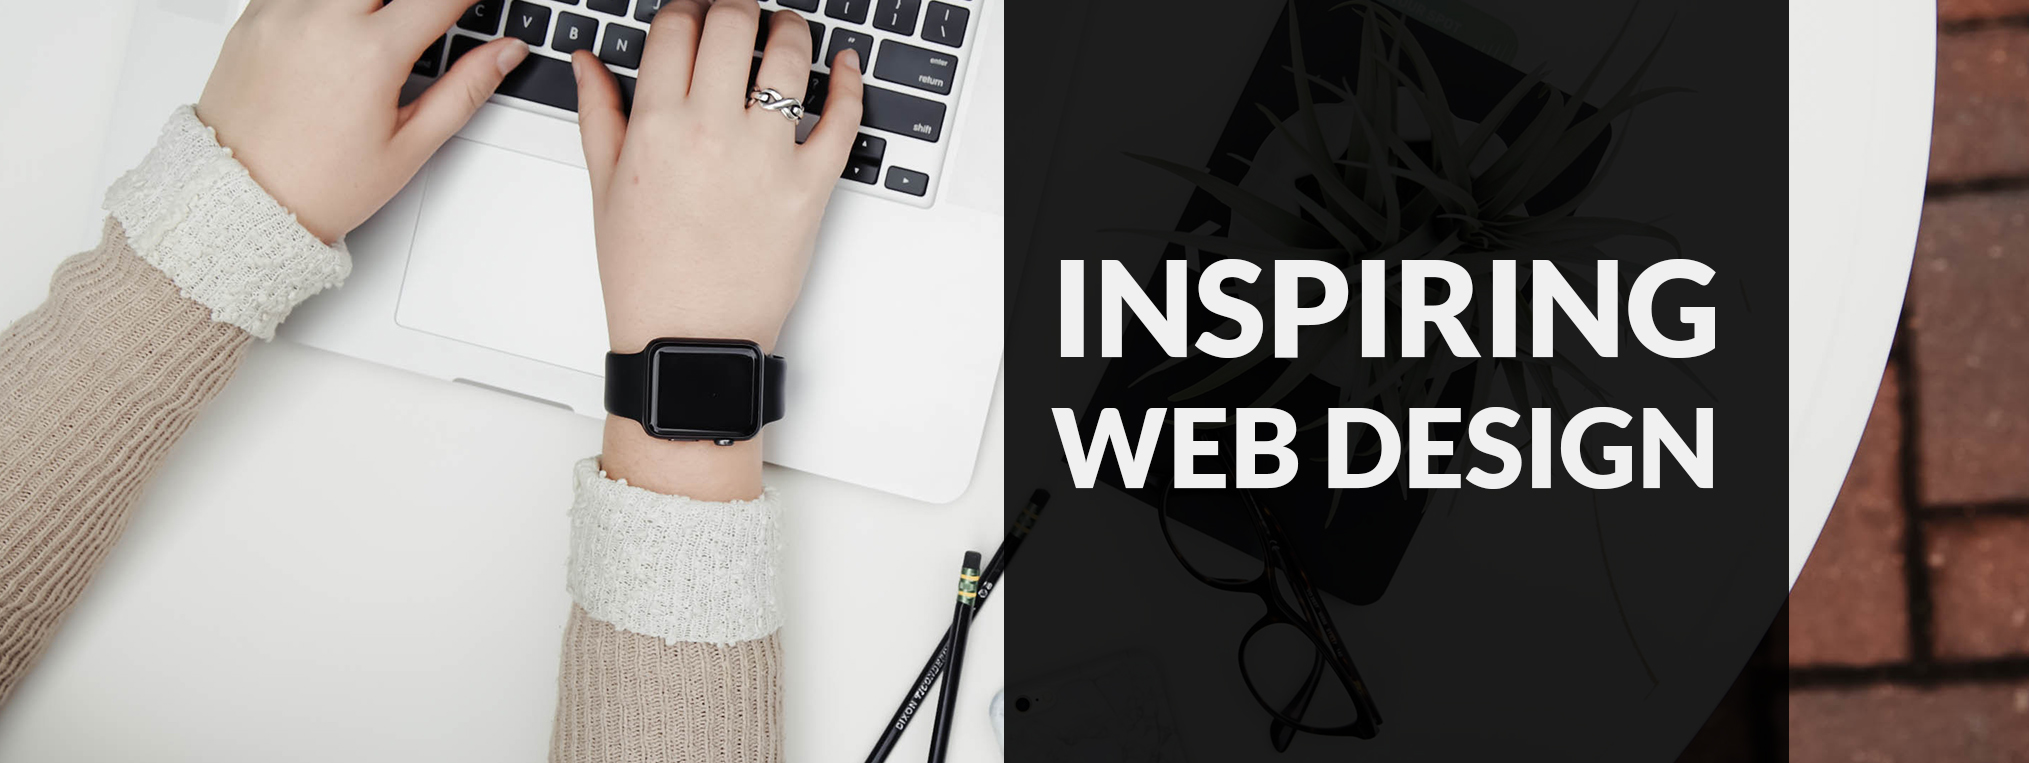 10 Examples of Great Web Design to Inspire Your Website ...